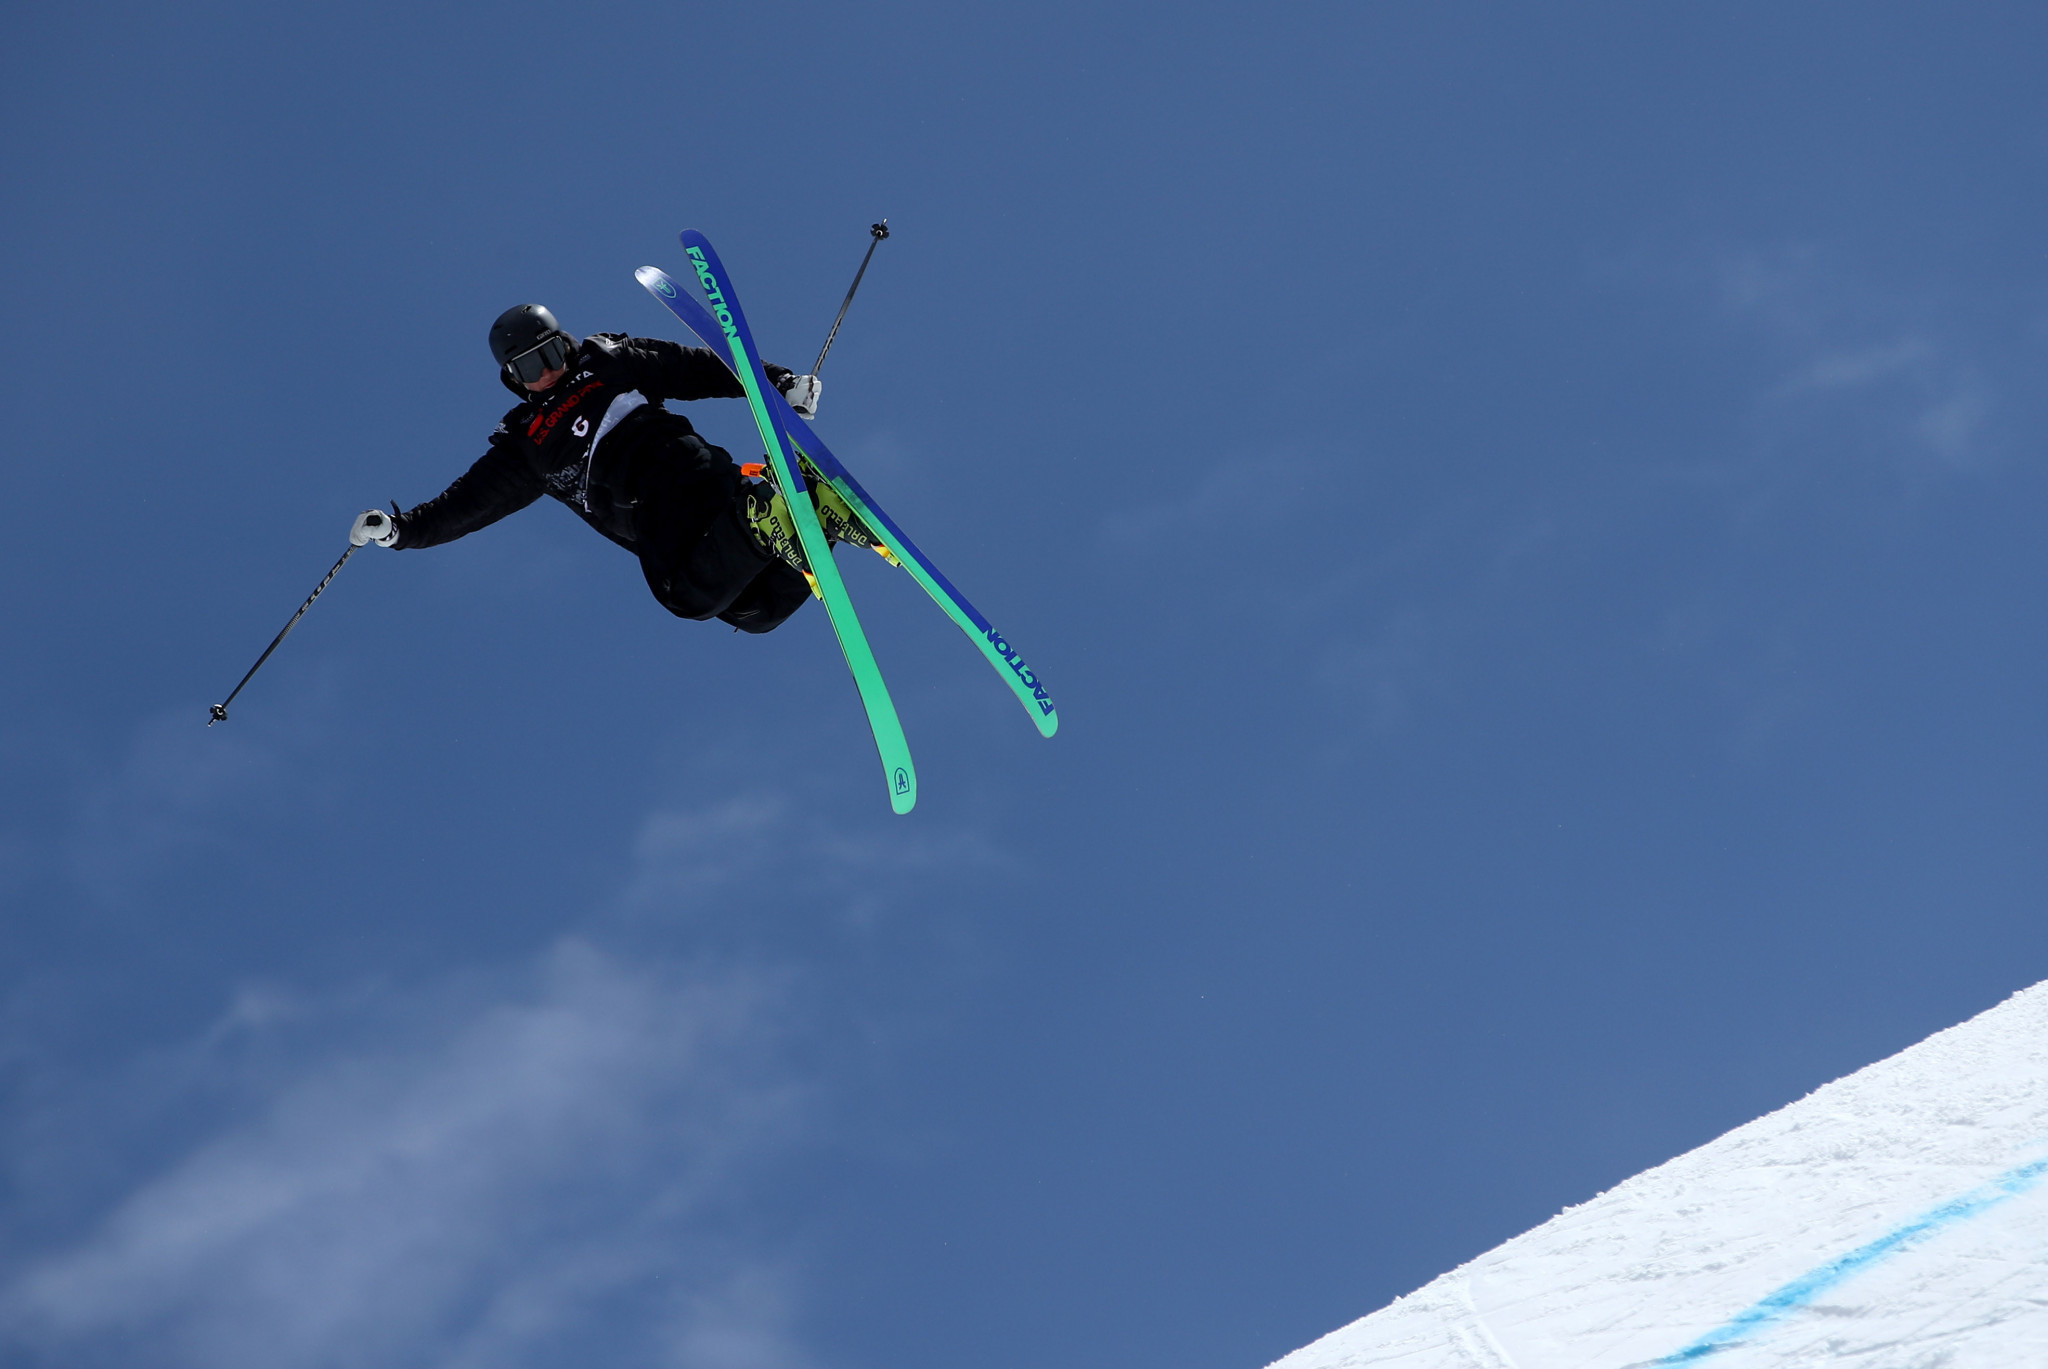 FIS Freestyle World Cup season to conclude with slopestyle event in Silvaplana